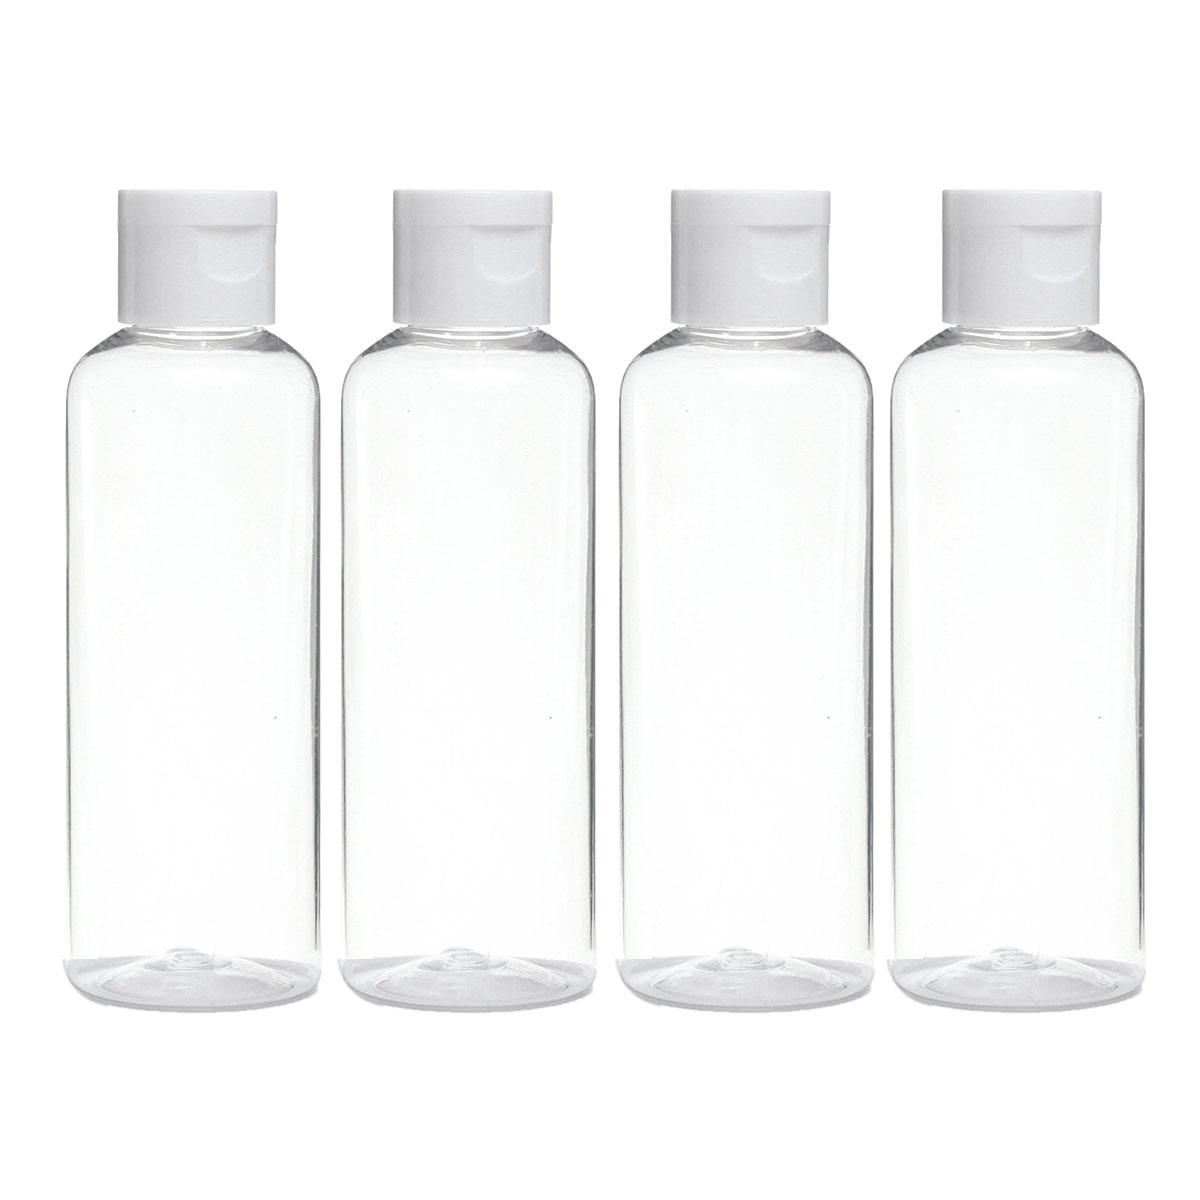 4PCS Empty Clear 100ml PET Cream Container Portable Cosmetic Travel Shower Lotion Bottles Personalized Sample Lotion Bottle beach 3d stereoscopic stone water 3d wall murals wallpaper floor 3d wallpaper floor for living room bathroom 3d wallpaper floor